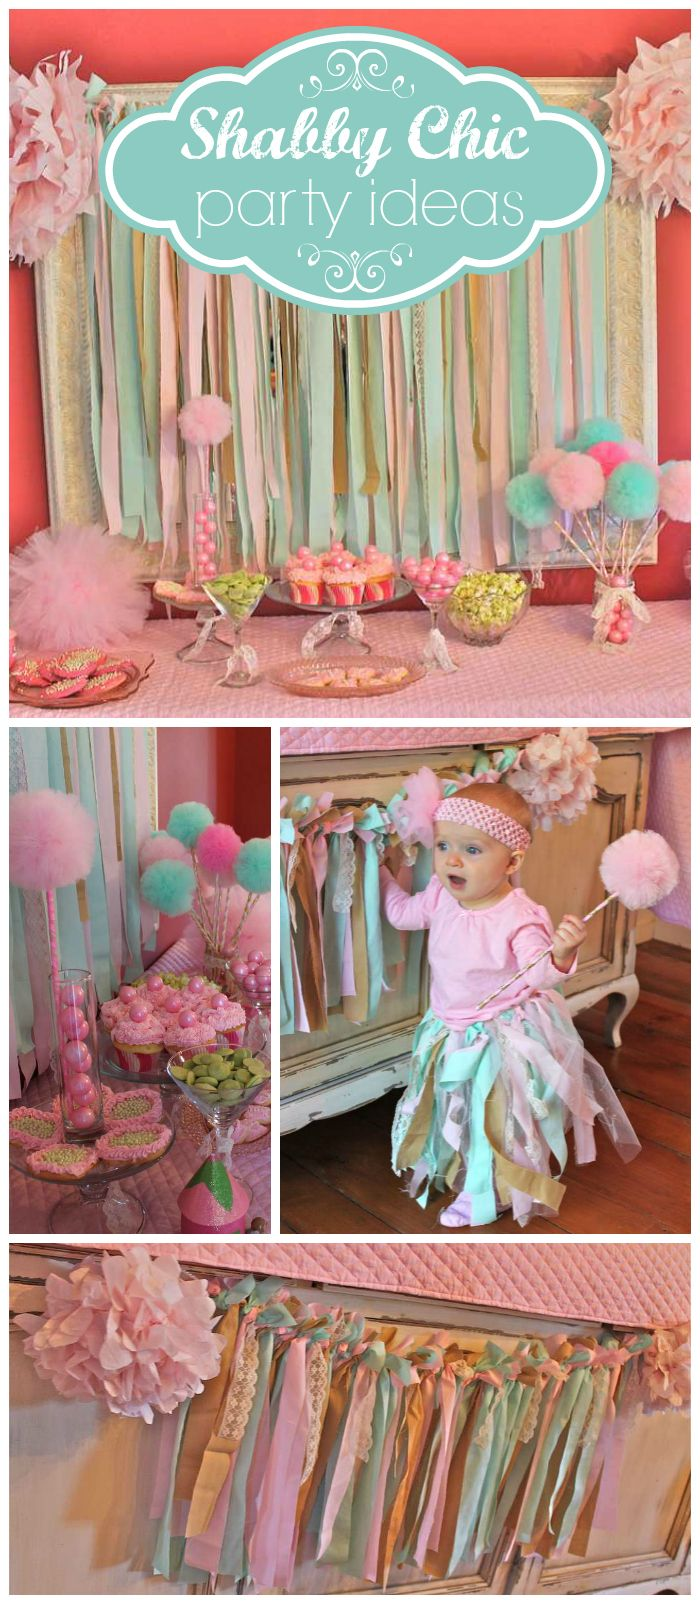 Inspire decor..... A shabby chic sugarplum fairy first birthday party with a sweets table and pom pom wand party favors! See more party planning ideas at CatchMyParty.com!